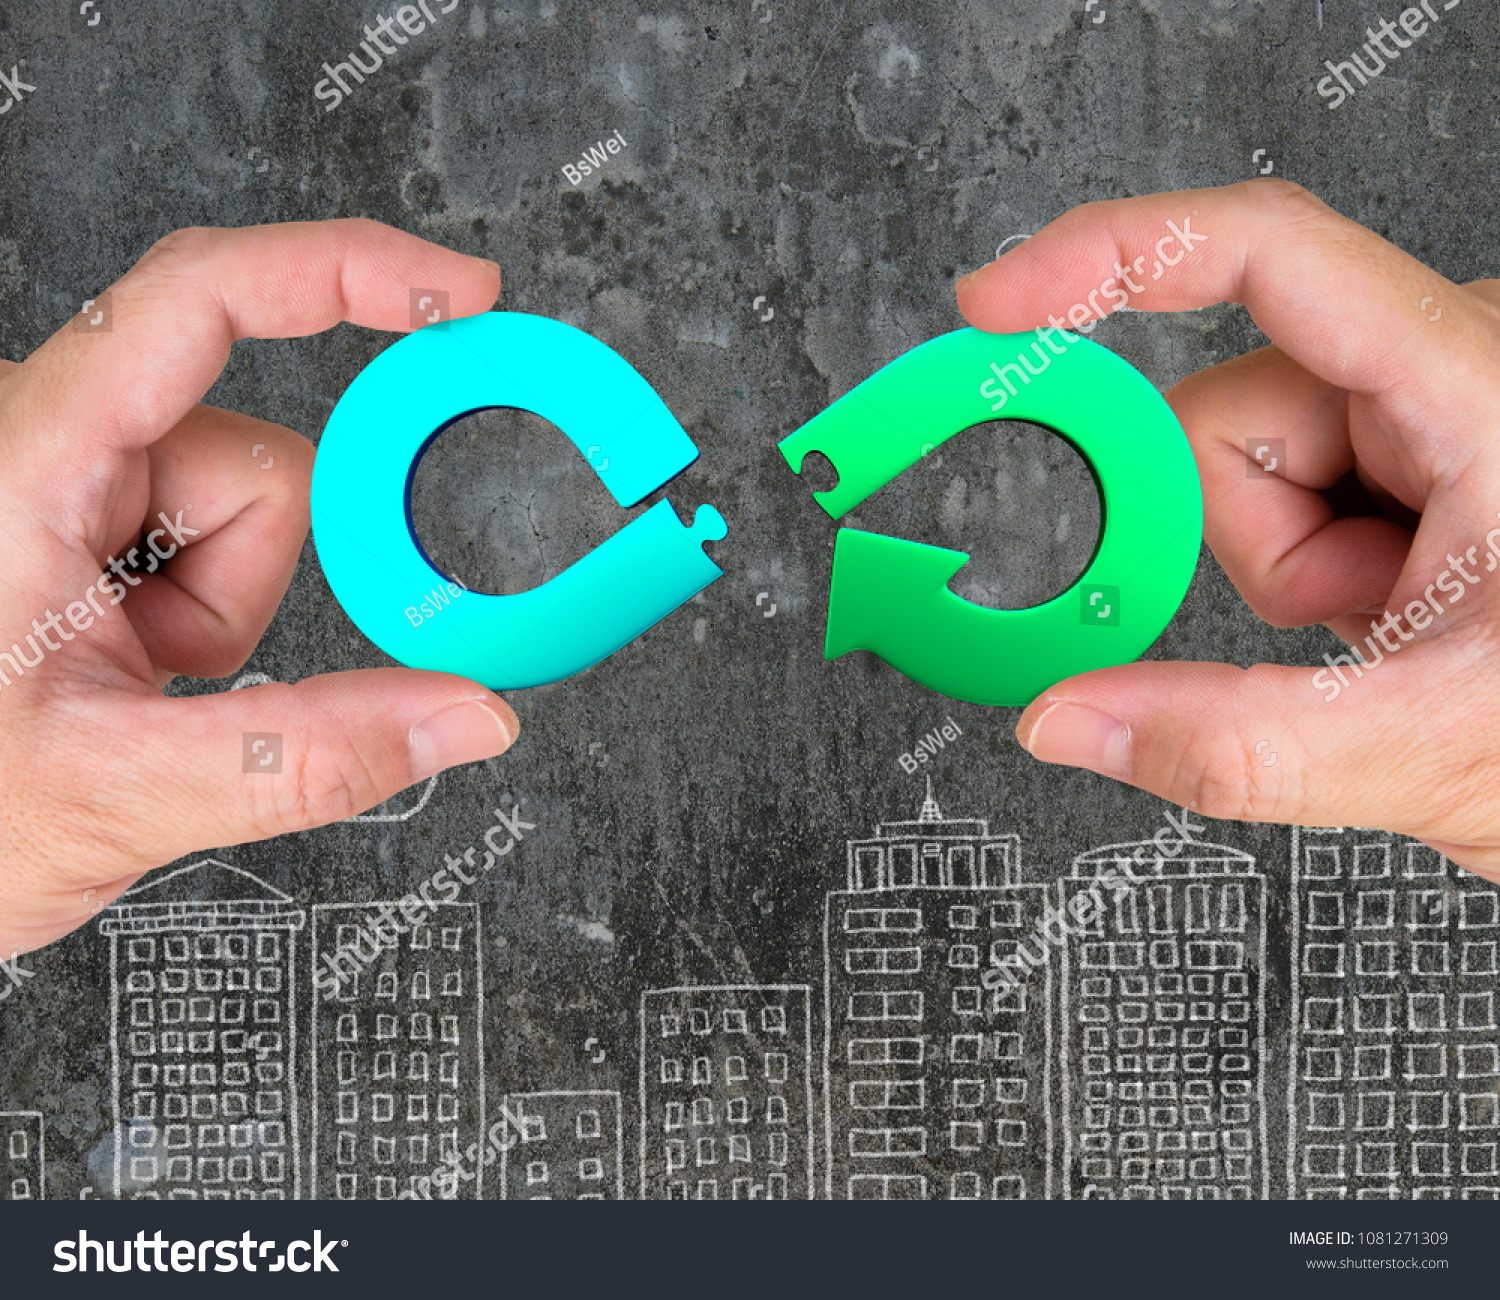 Circular economy concept. Two hands assembling arrow infinity recycling symbol of jigsaw puzzle pieces, on city buildings doodles background. #1081271309